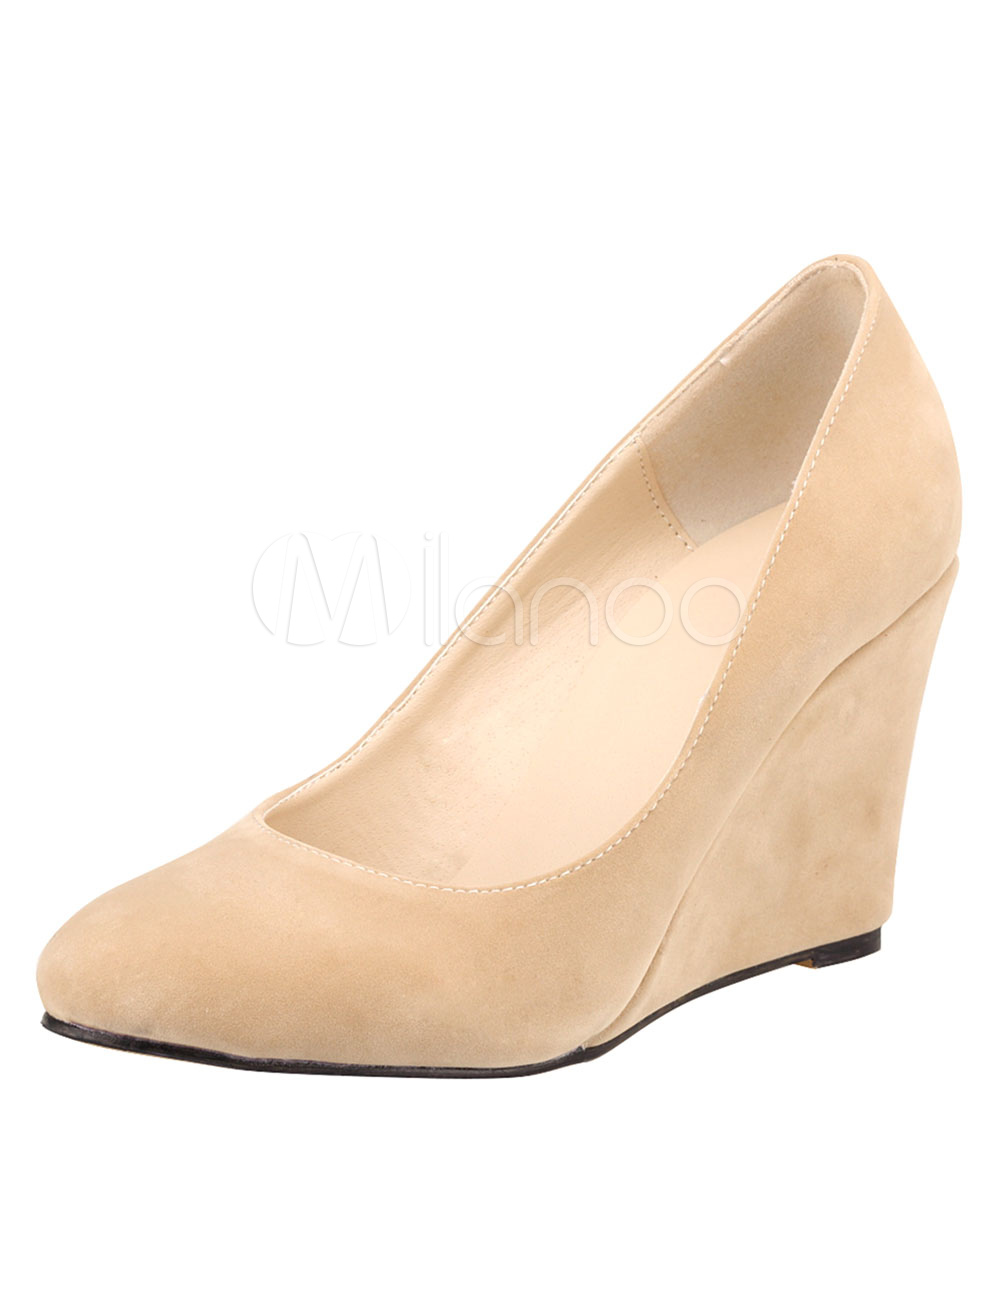 Suede Wedge Pumps Round Toe Slip On Shoes For Women thumbnail